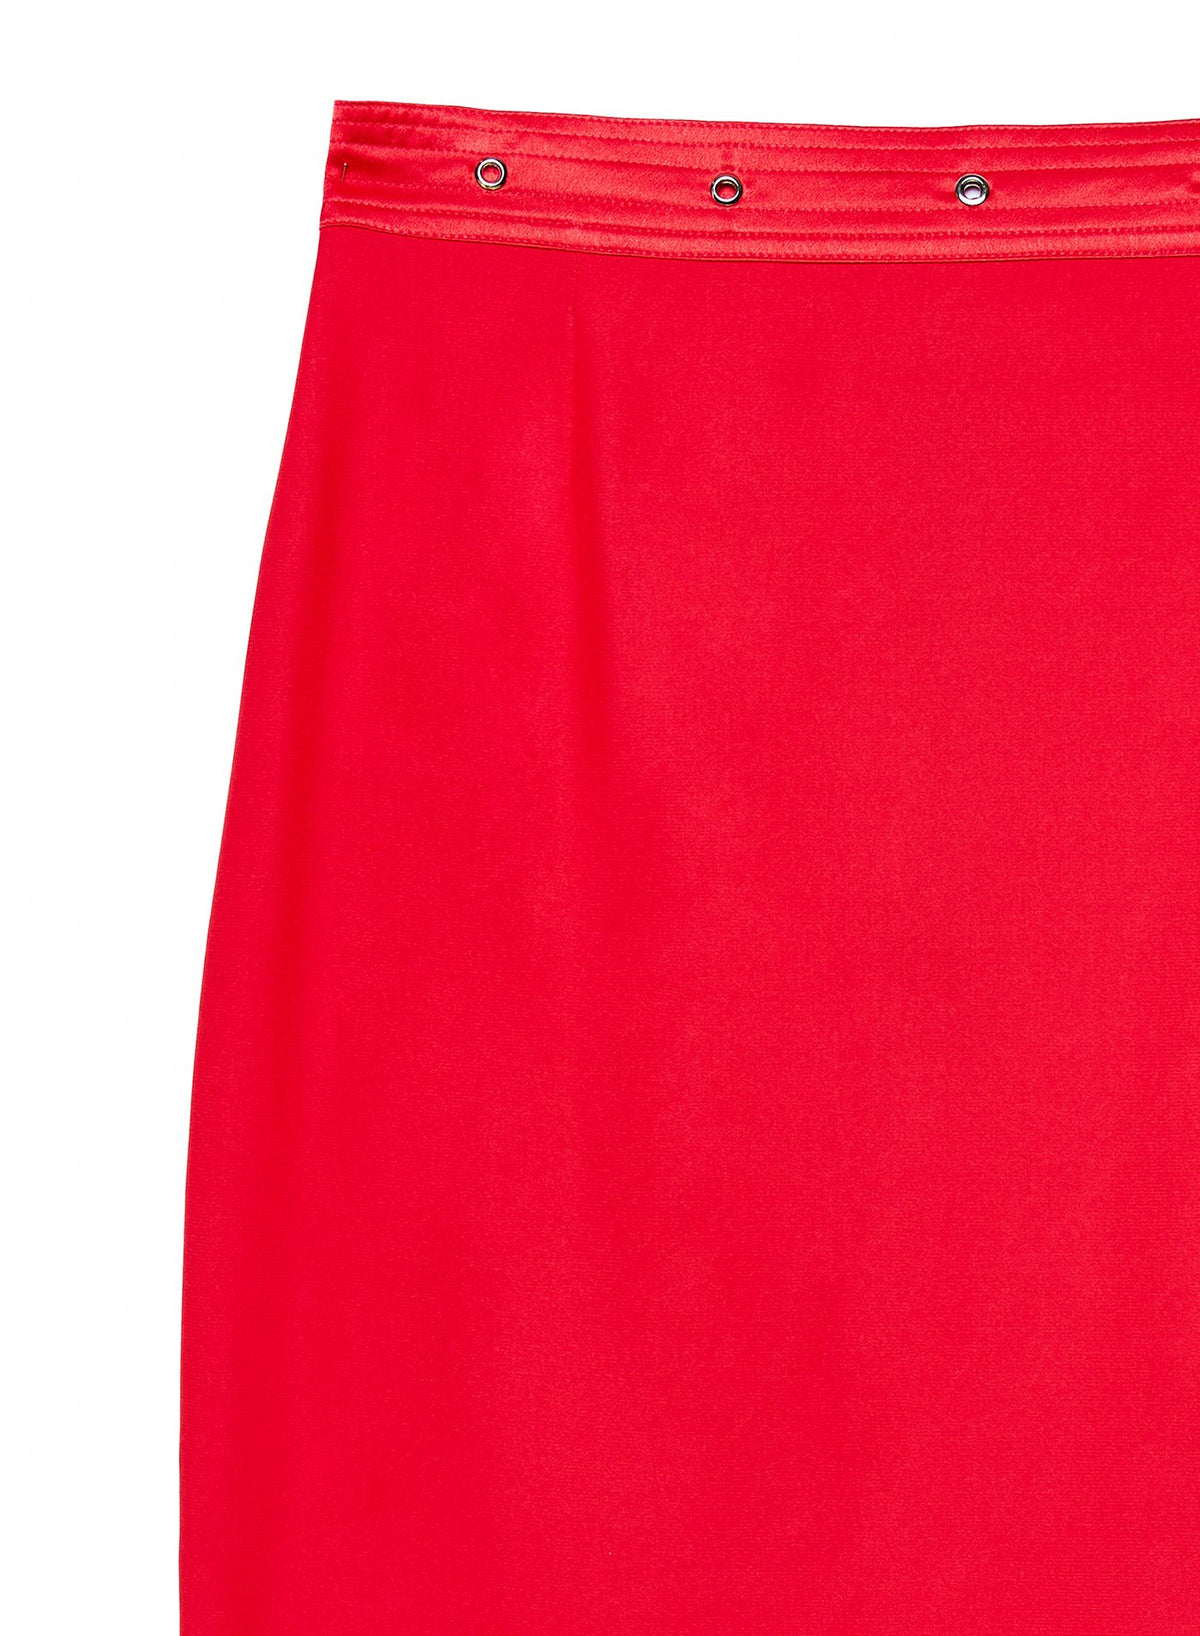 Grommet Pencil Skirt